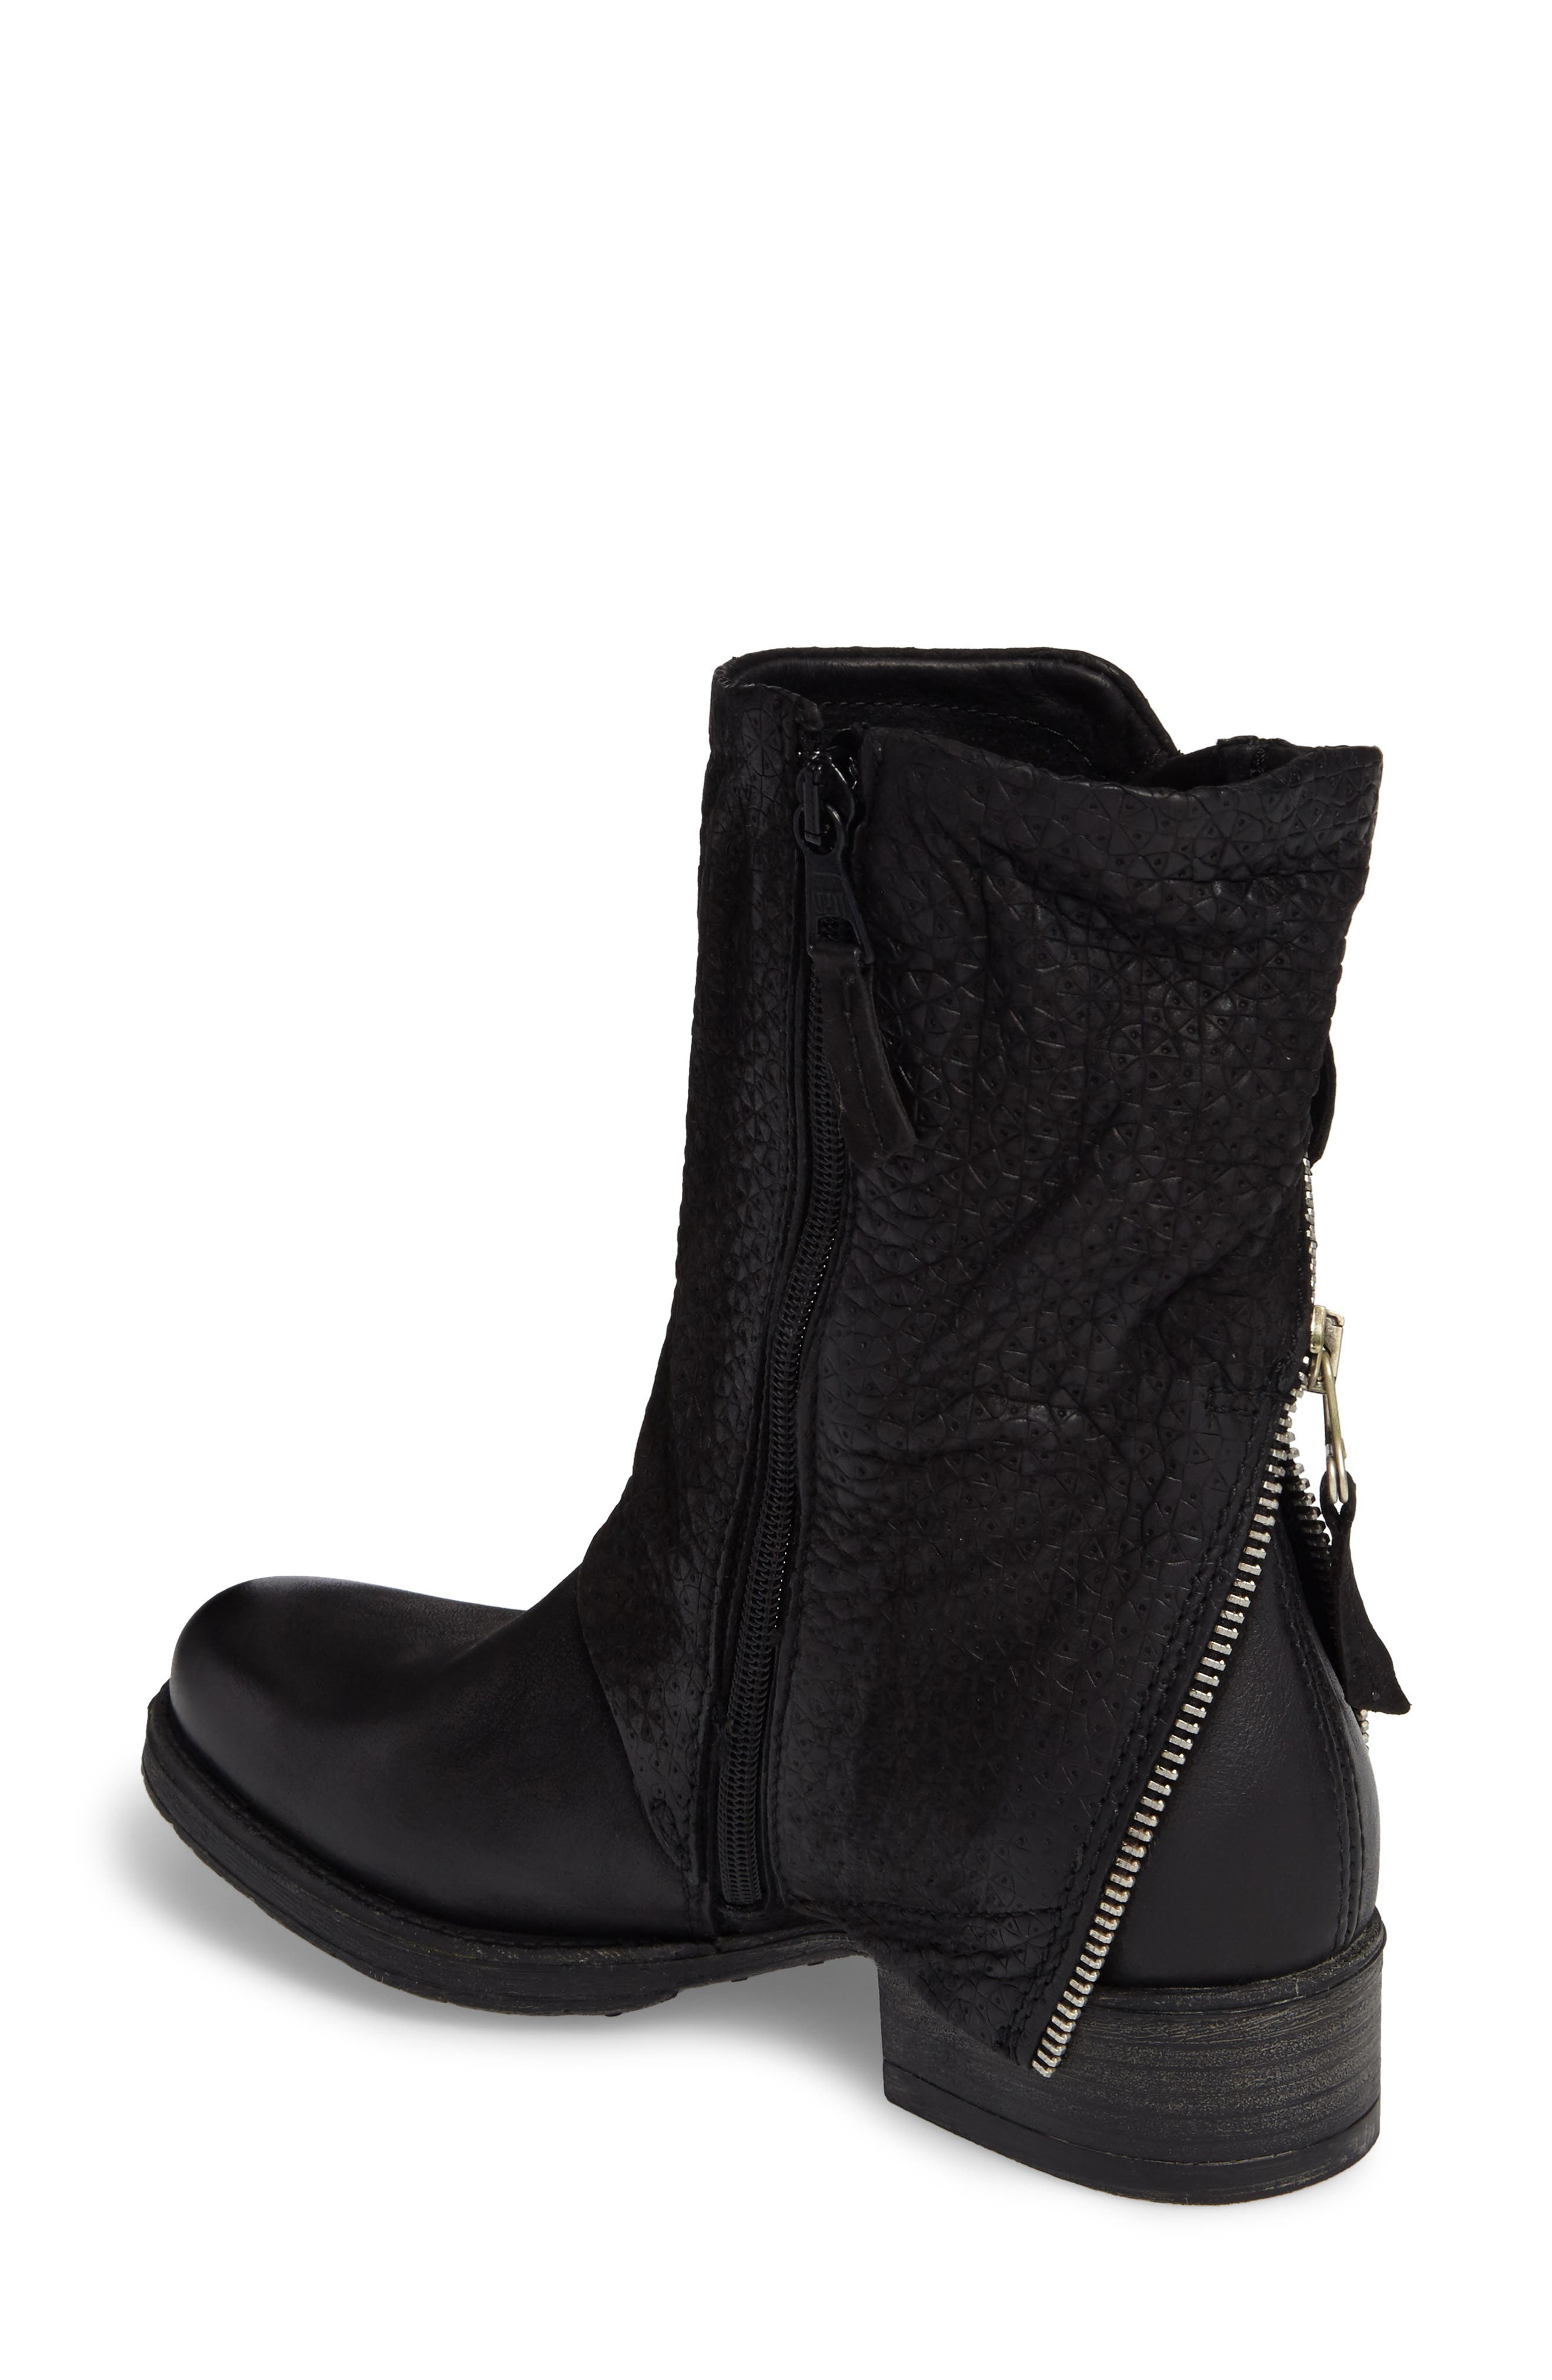 Nugget Asymmetrical Textured Boot,                             Alternate thumbnail 2, color,                             001